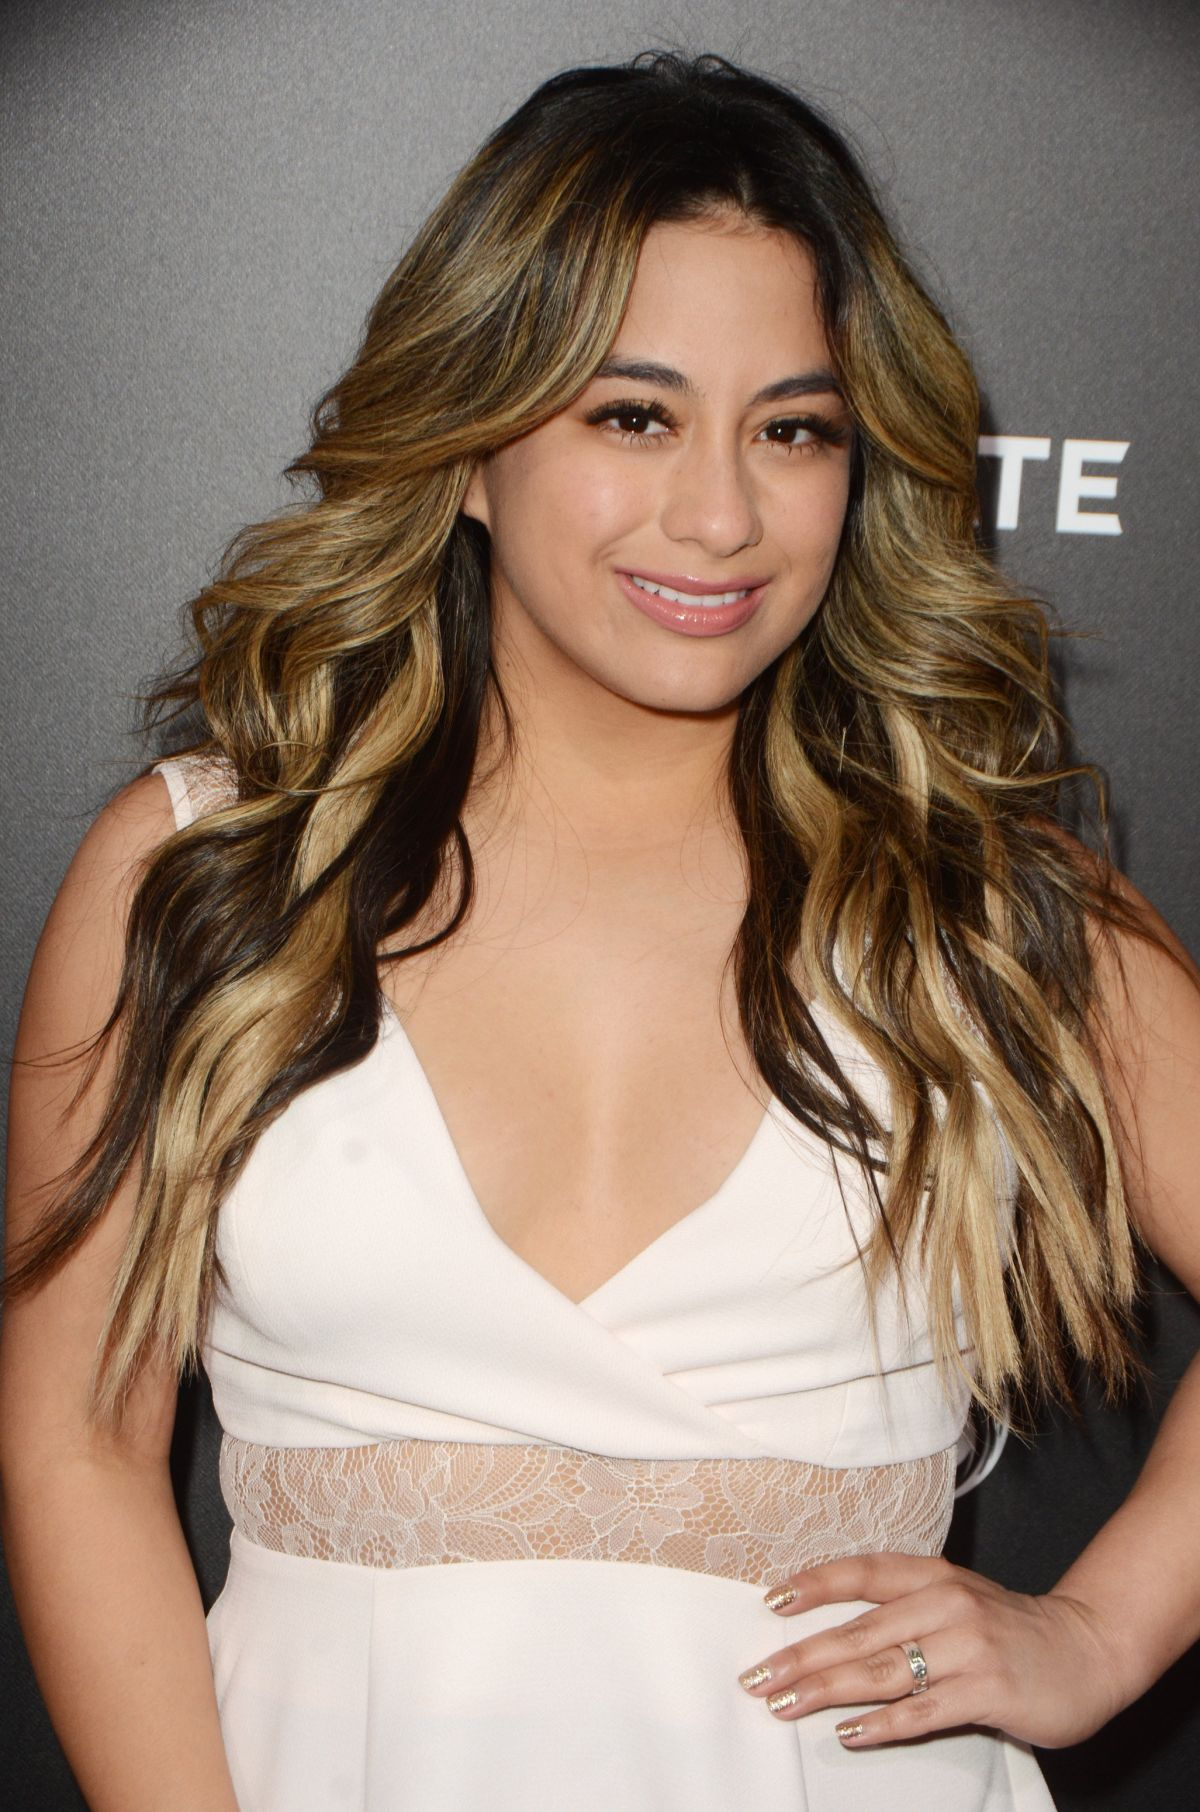 ALLY BROOKE at The Choice Premiere in Hollywood 02/01/2016